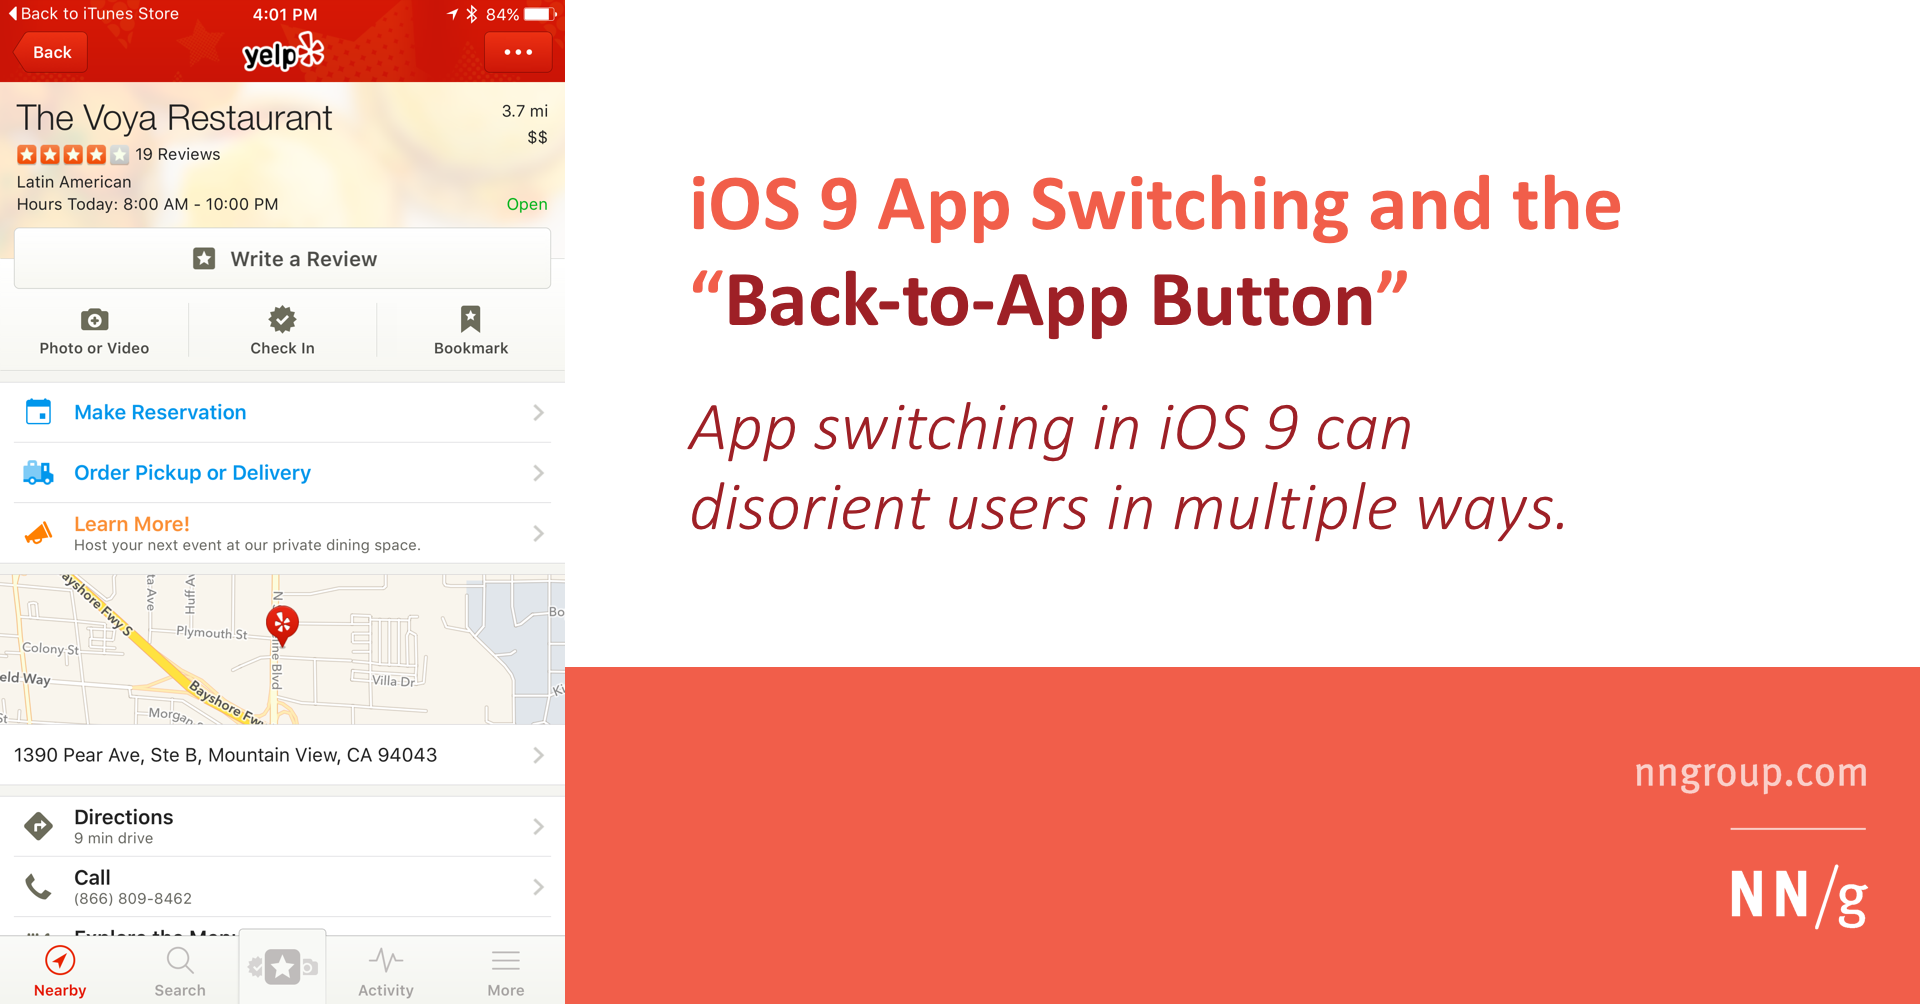 iOS 9 App Switching and the Back-to-App Button